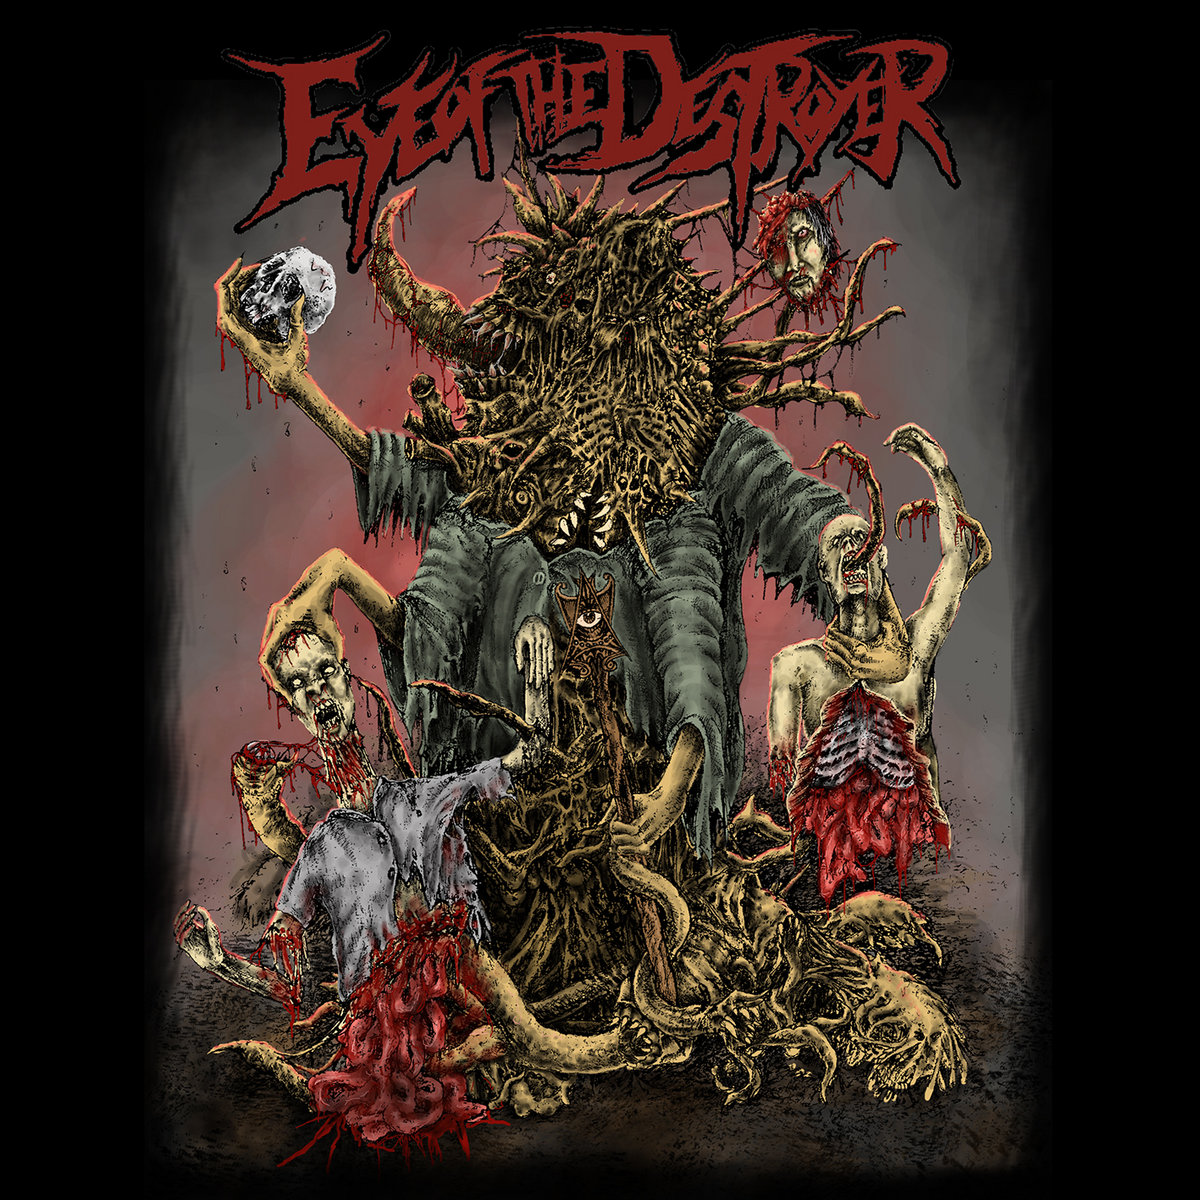 Violent By Design (Featuring Don Campan of Waking the Cadaver) by Eye Of The Destroyer